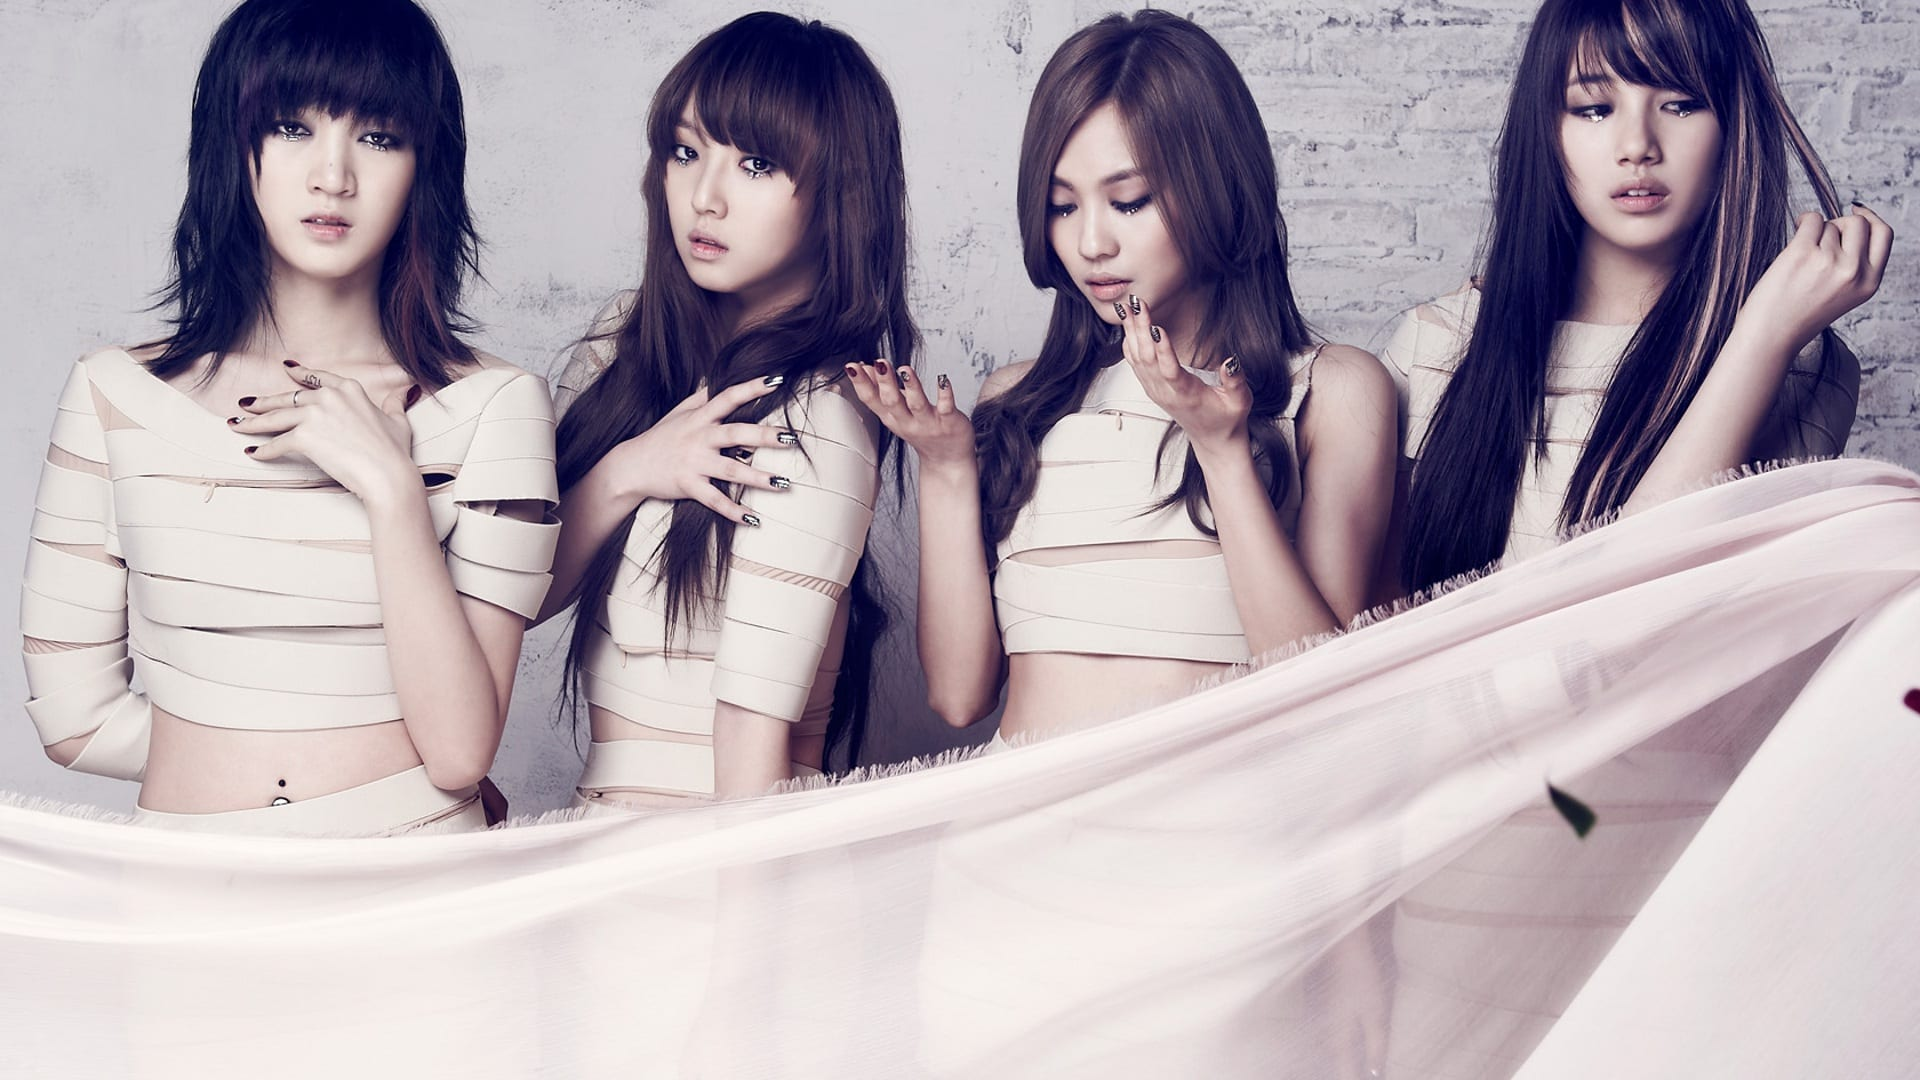 JYP Entertainment Confirms Miss A Has Disbanded